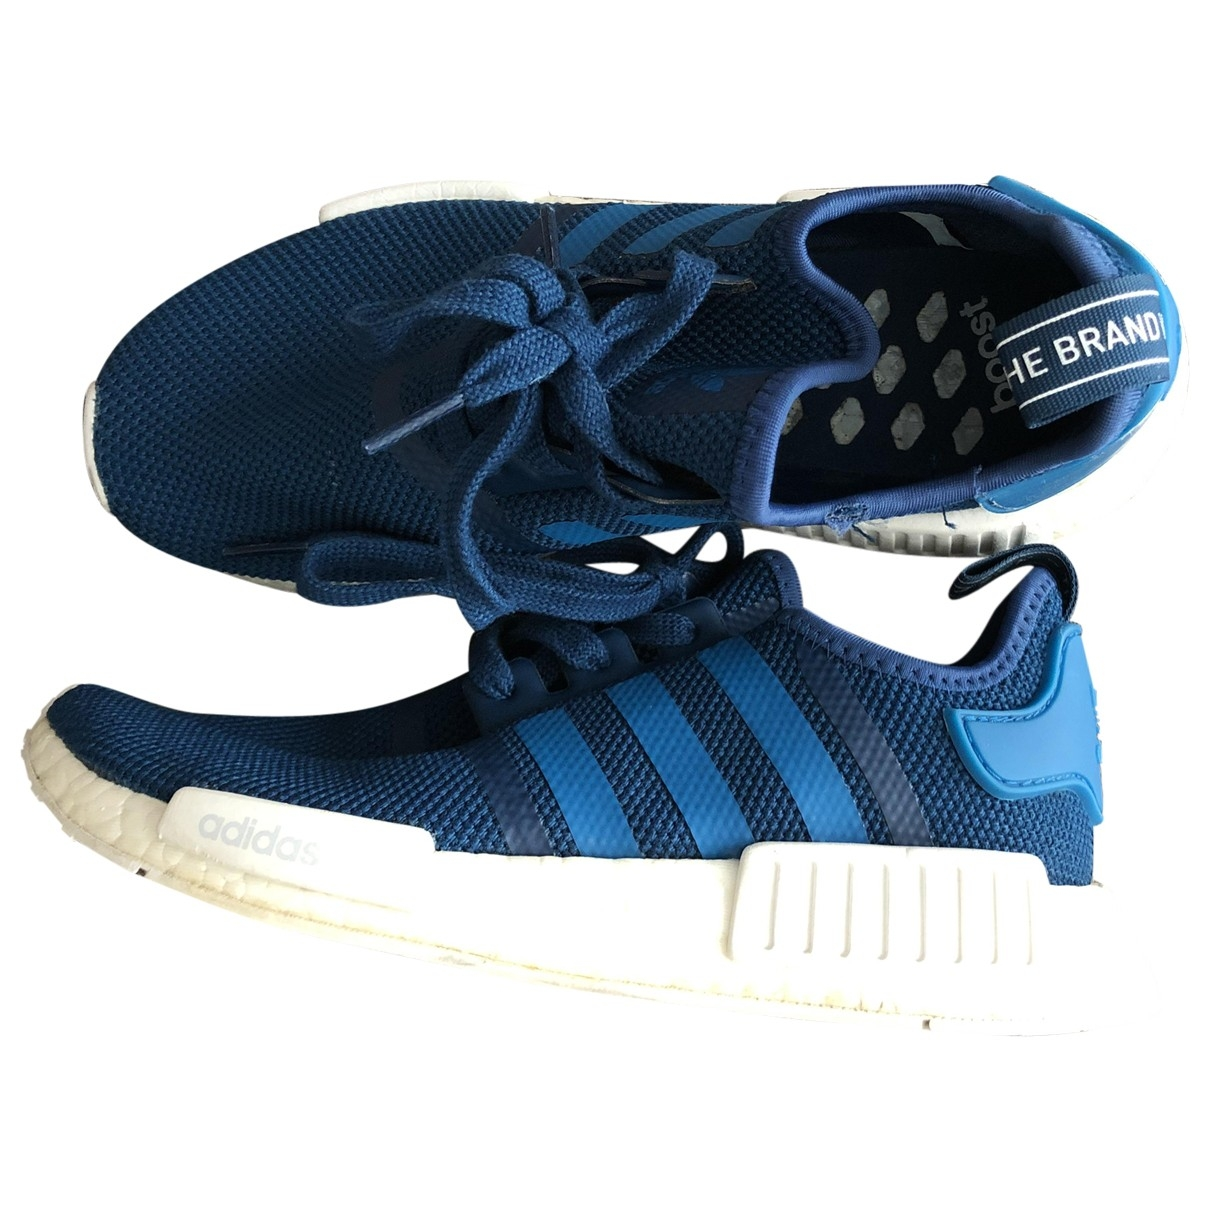 Adidas Nmd Blue Rubber Trainers for Women 40 EU